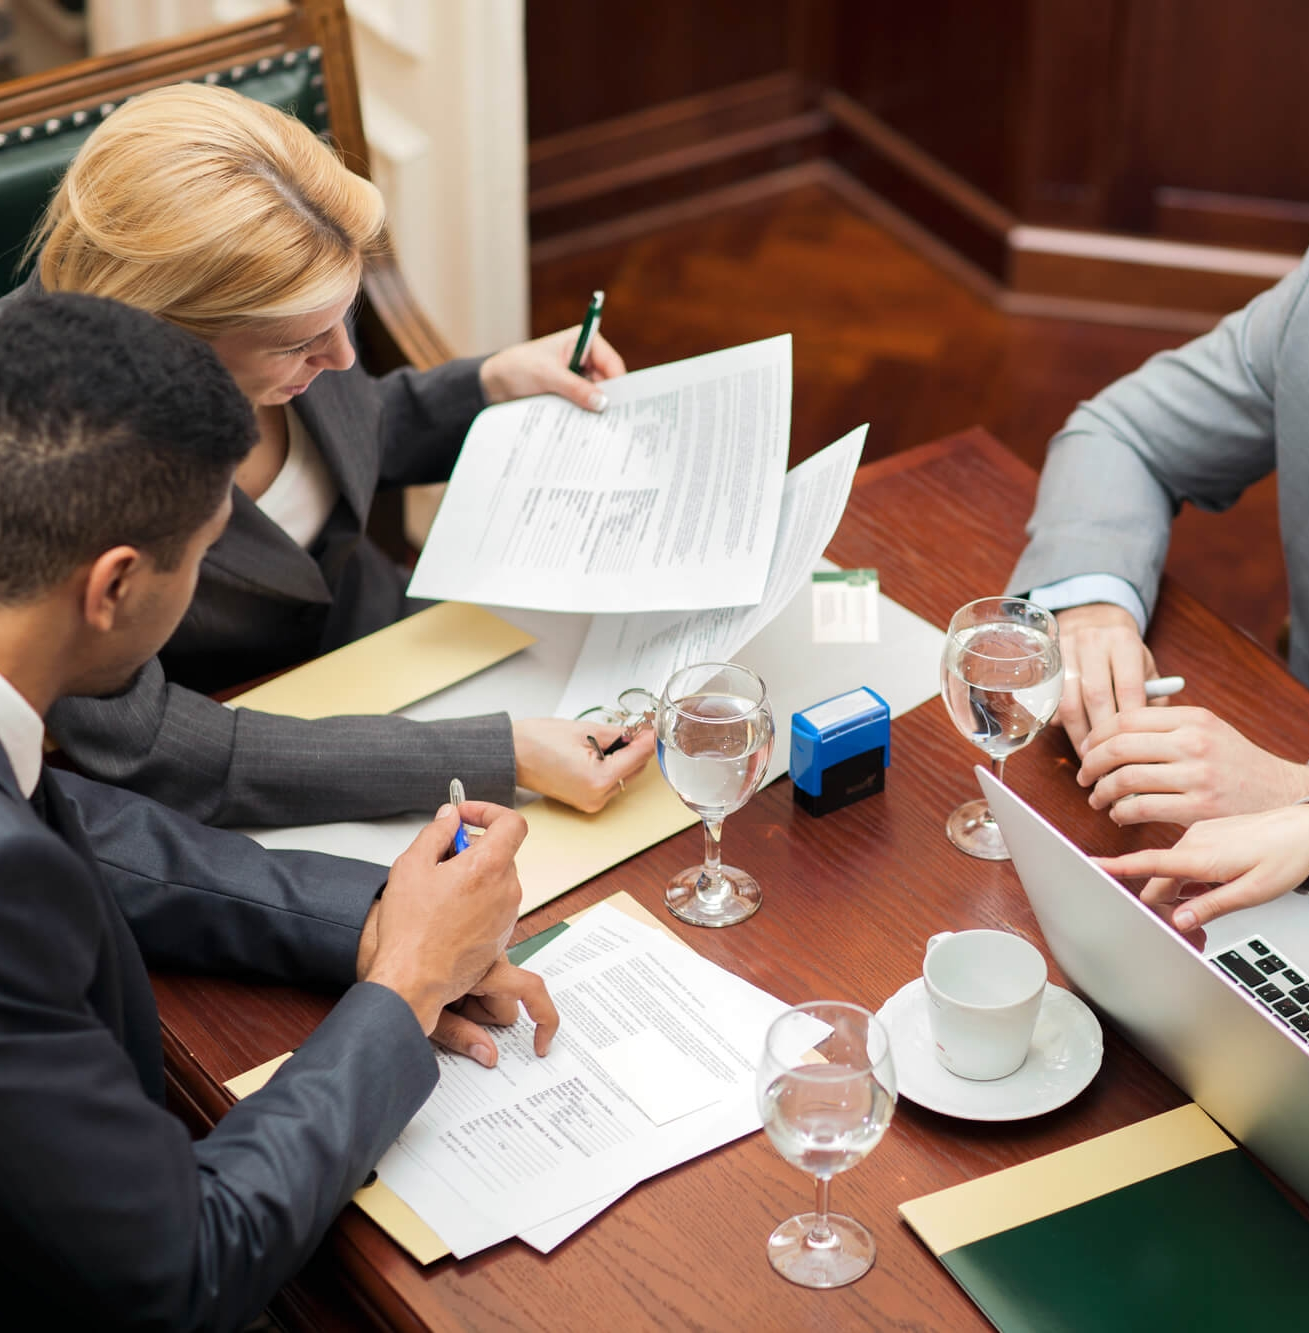 - At Kanen Law Firm, we use our vast and diverse experience and knowledge ensure that our clients achieve their goals while protecting their business and financial interests. We strive to build long lasting relationships by providing our clients with valuable legal advice in a prompt and efficient manner.